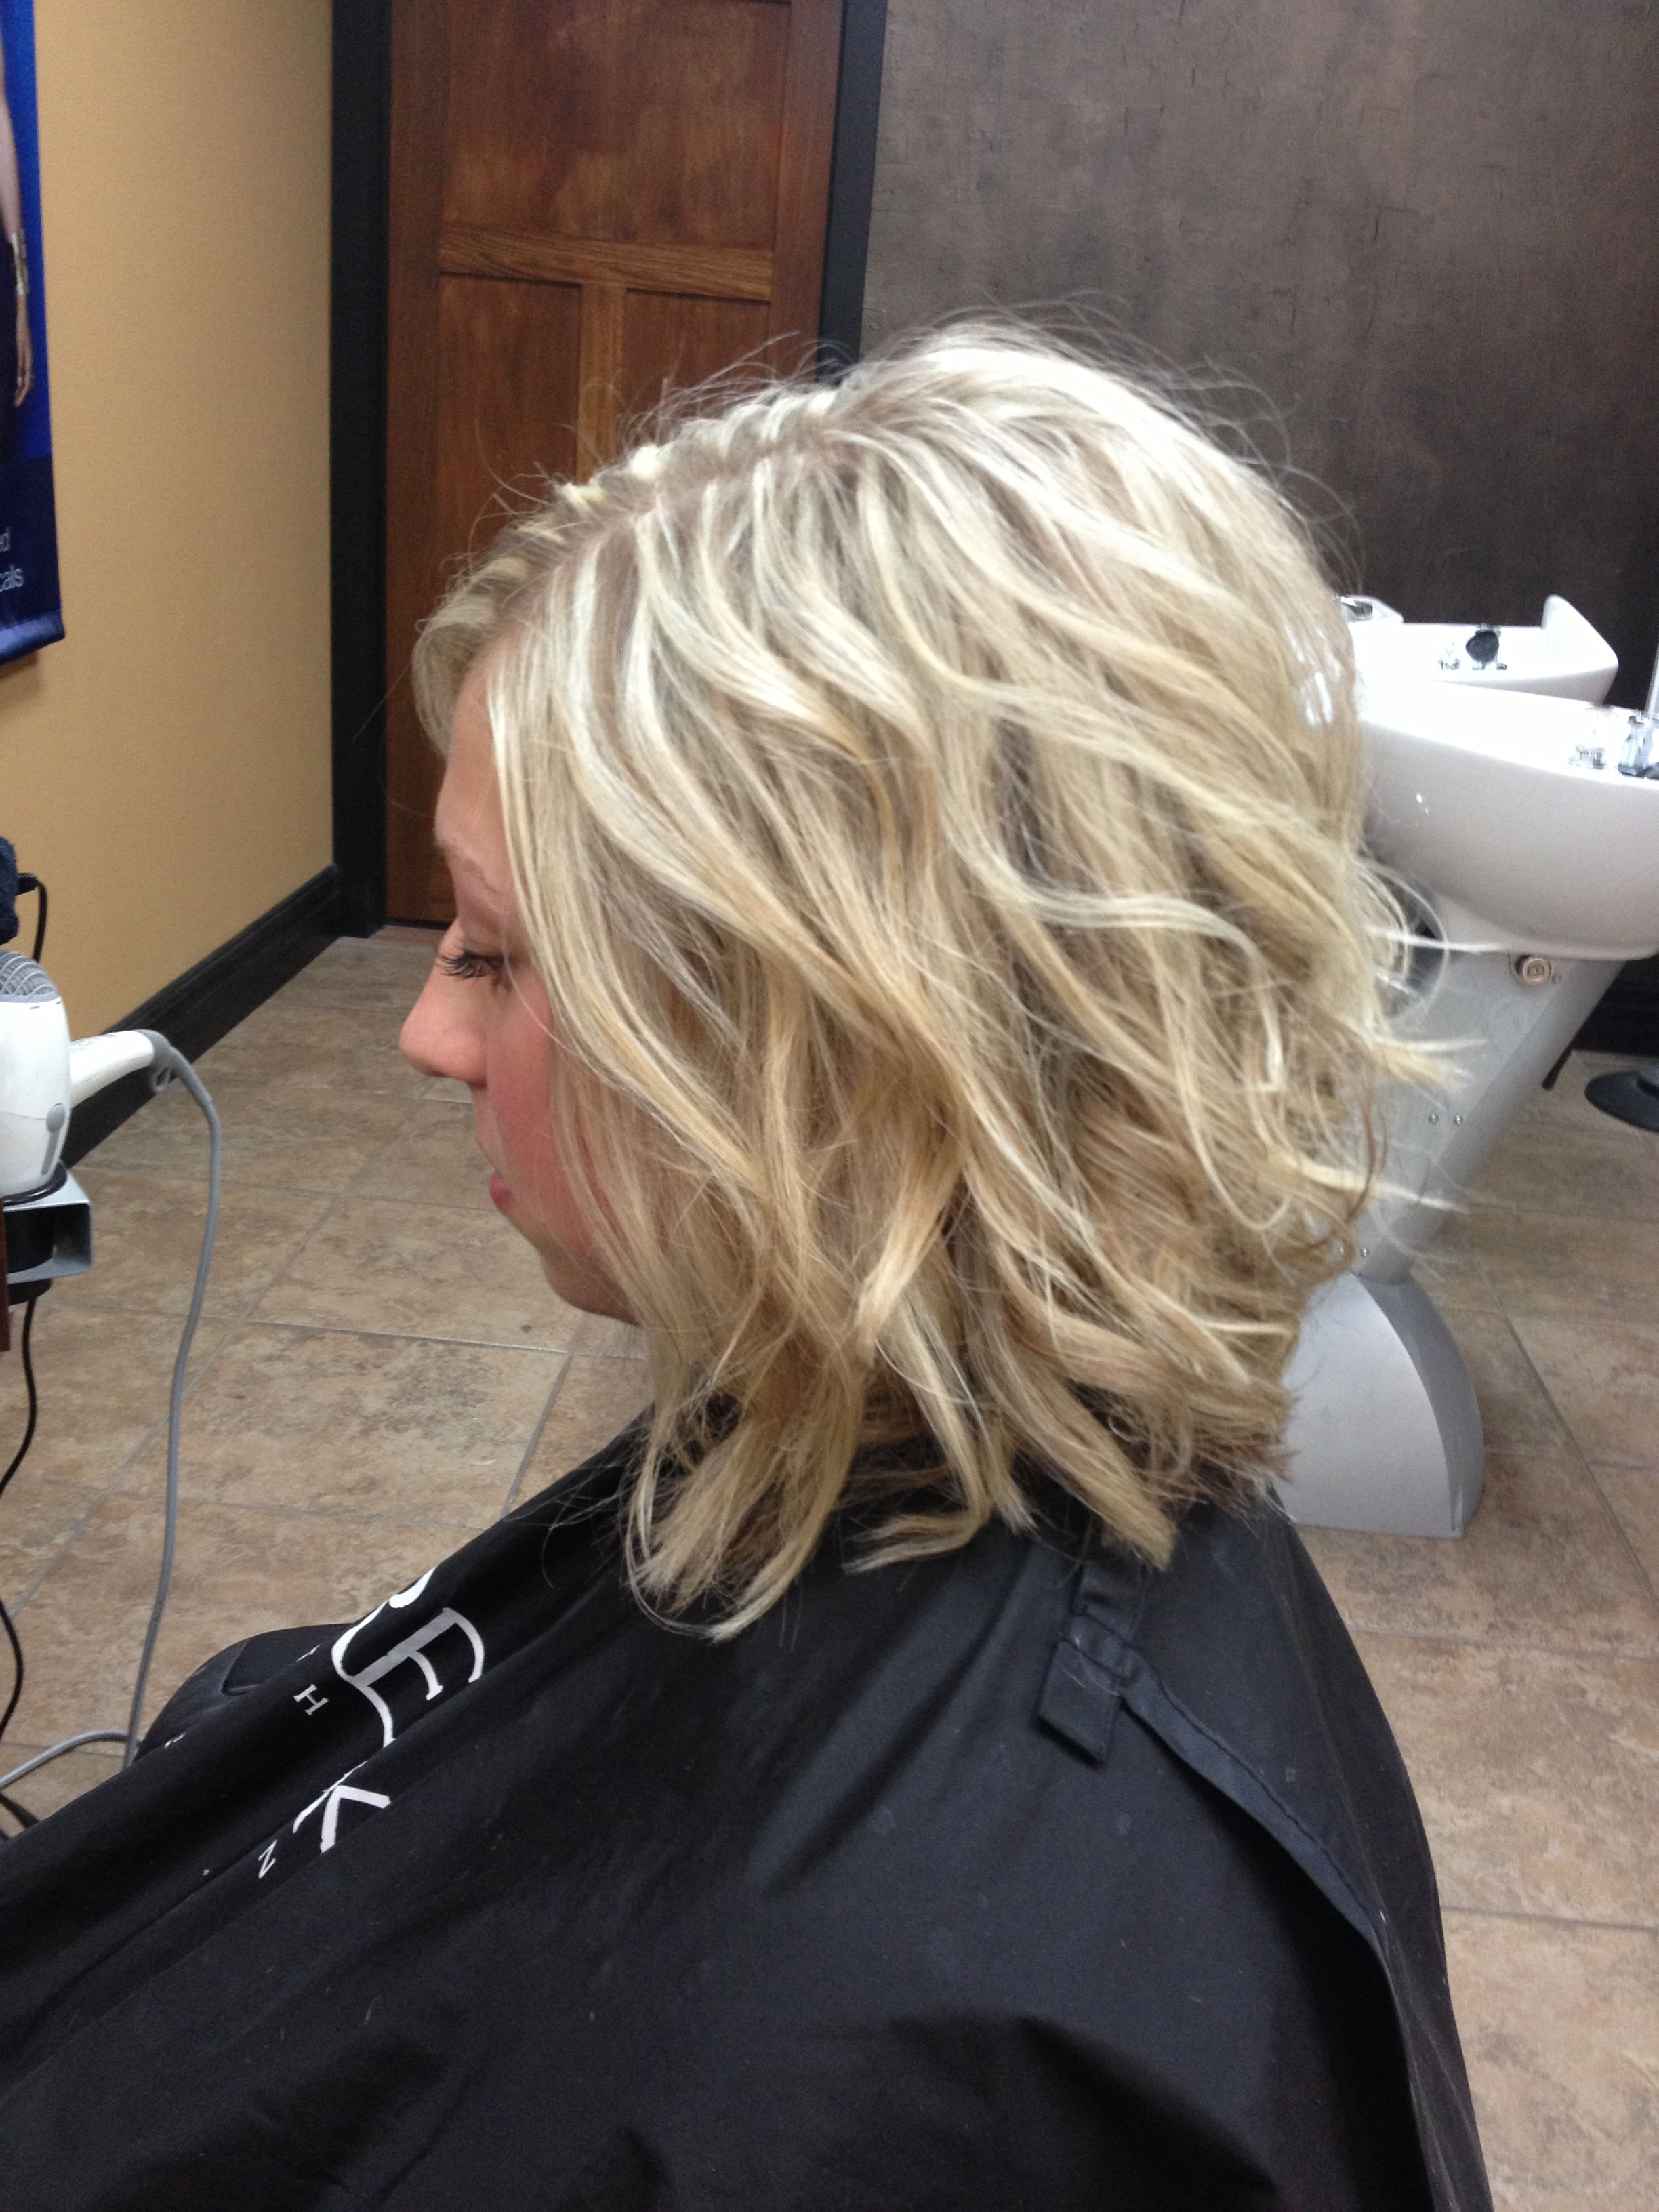 Inverted Bob Hair Styles: Slightly Inverted Bob, With Long Layers. Color: Heavy Full